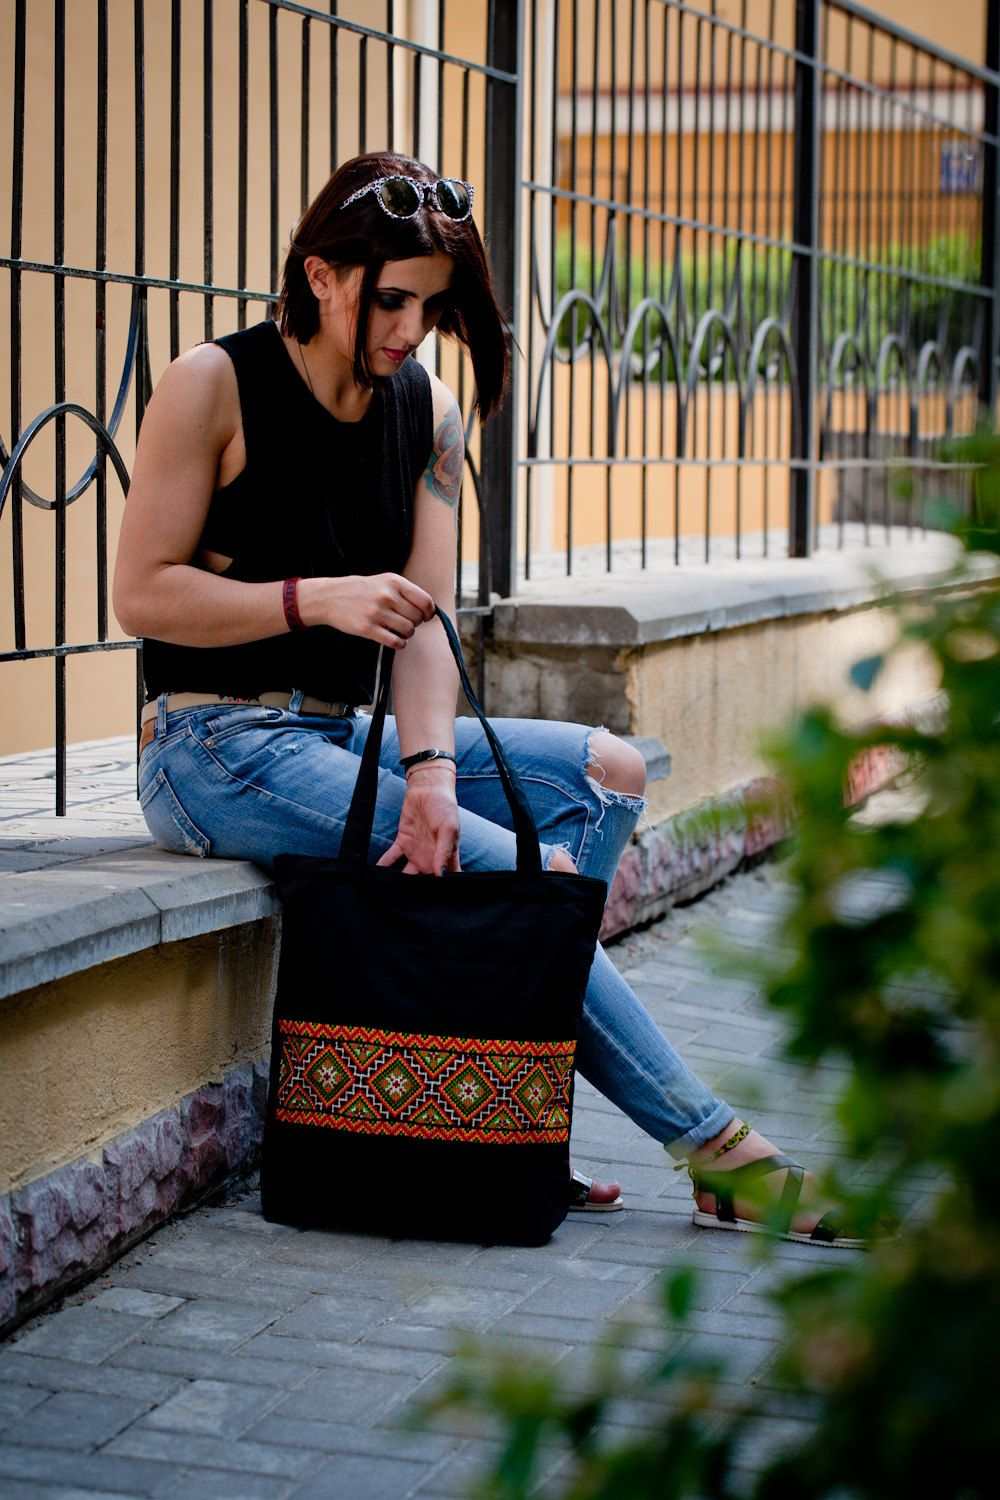 Black Canvas Bag With Ukrainian Embroidery Ethnic Folk Blask Handmade Bagembroidered Shoulder Beach By Gutsulkabeauty On Etsy